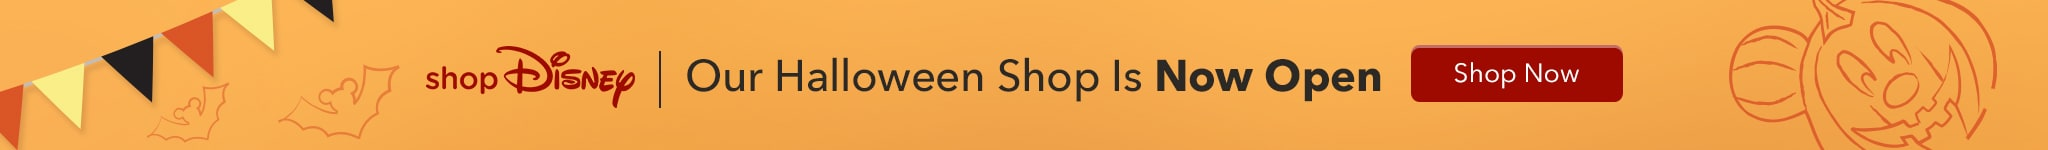 shopDisney Our Halloween Shop Is Now Open